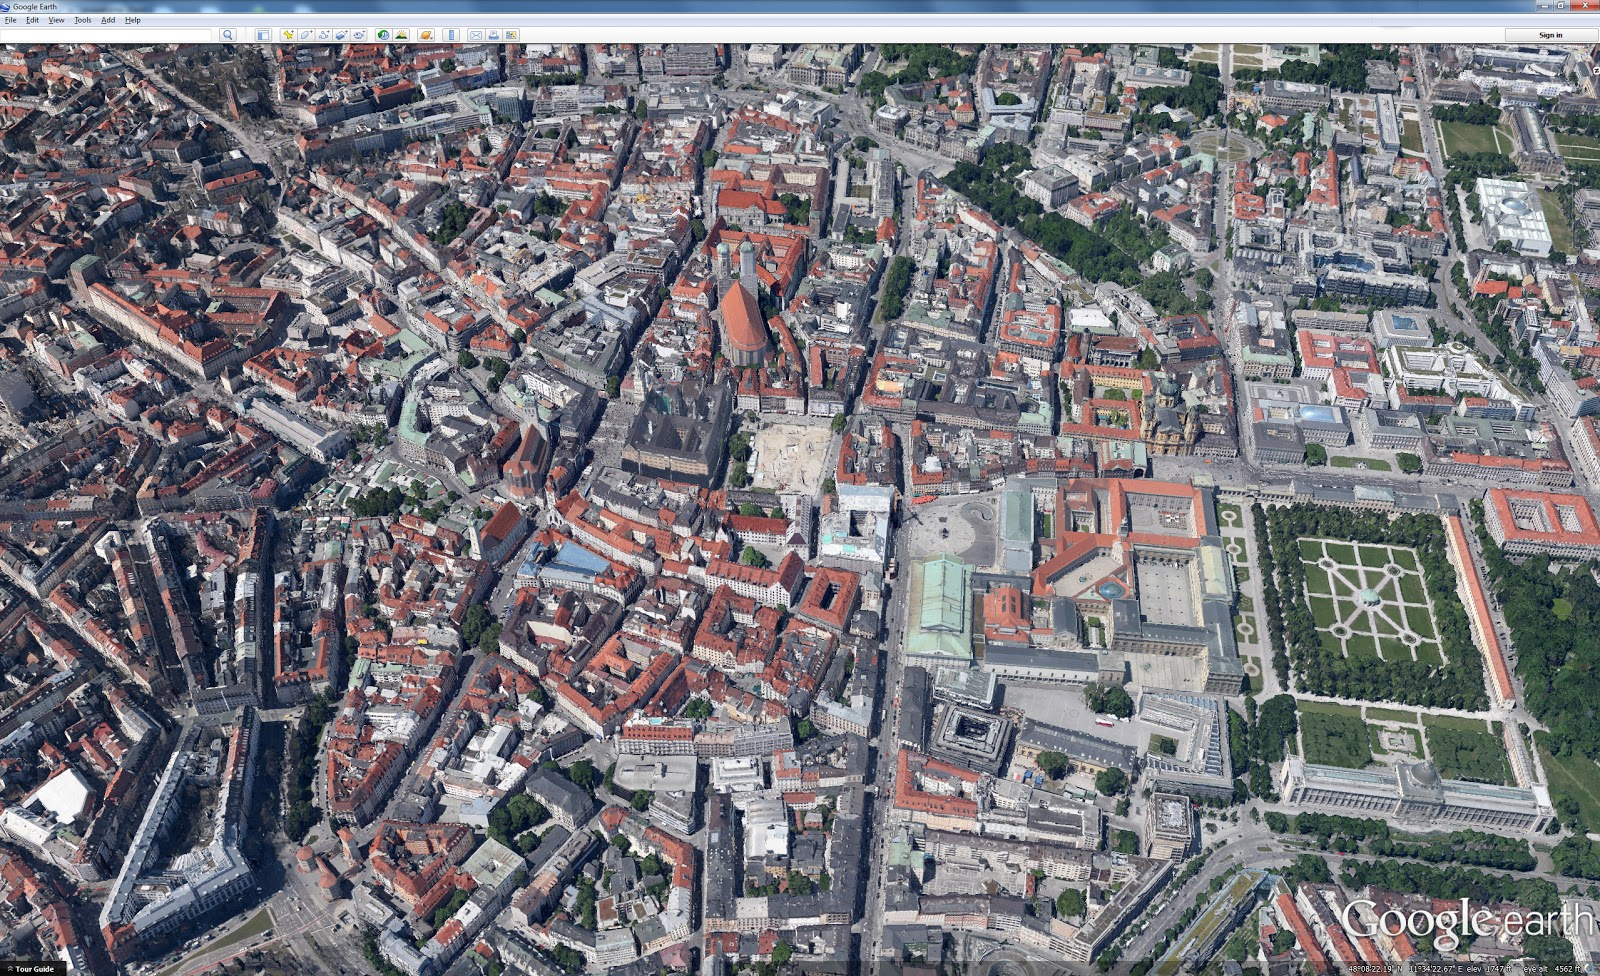 Google earth 7 gets 11 3d cities and 11 000 virtual tours 3d site